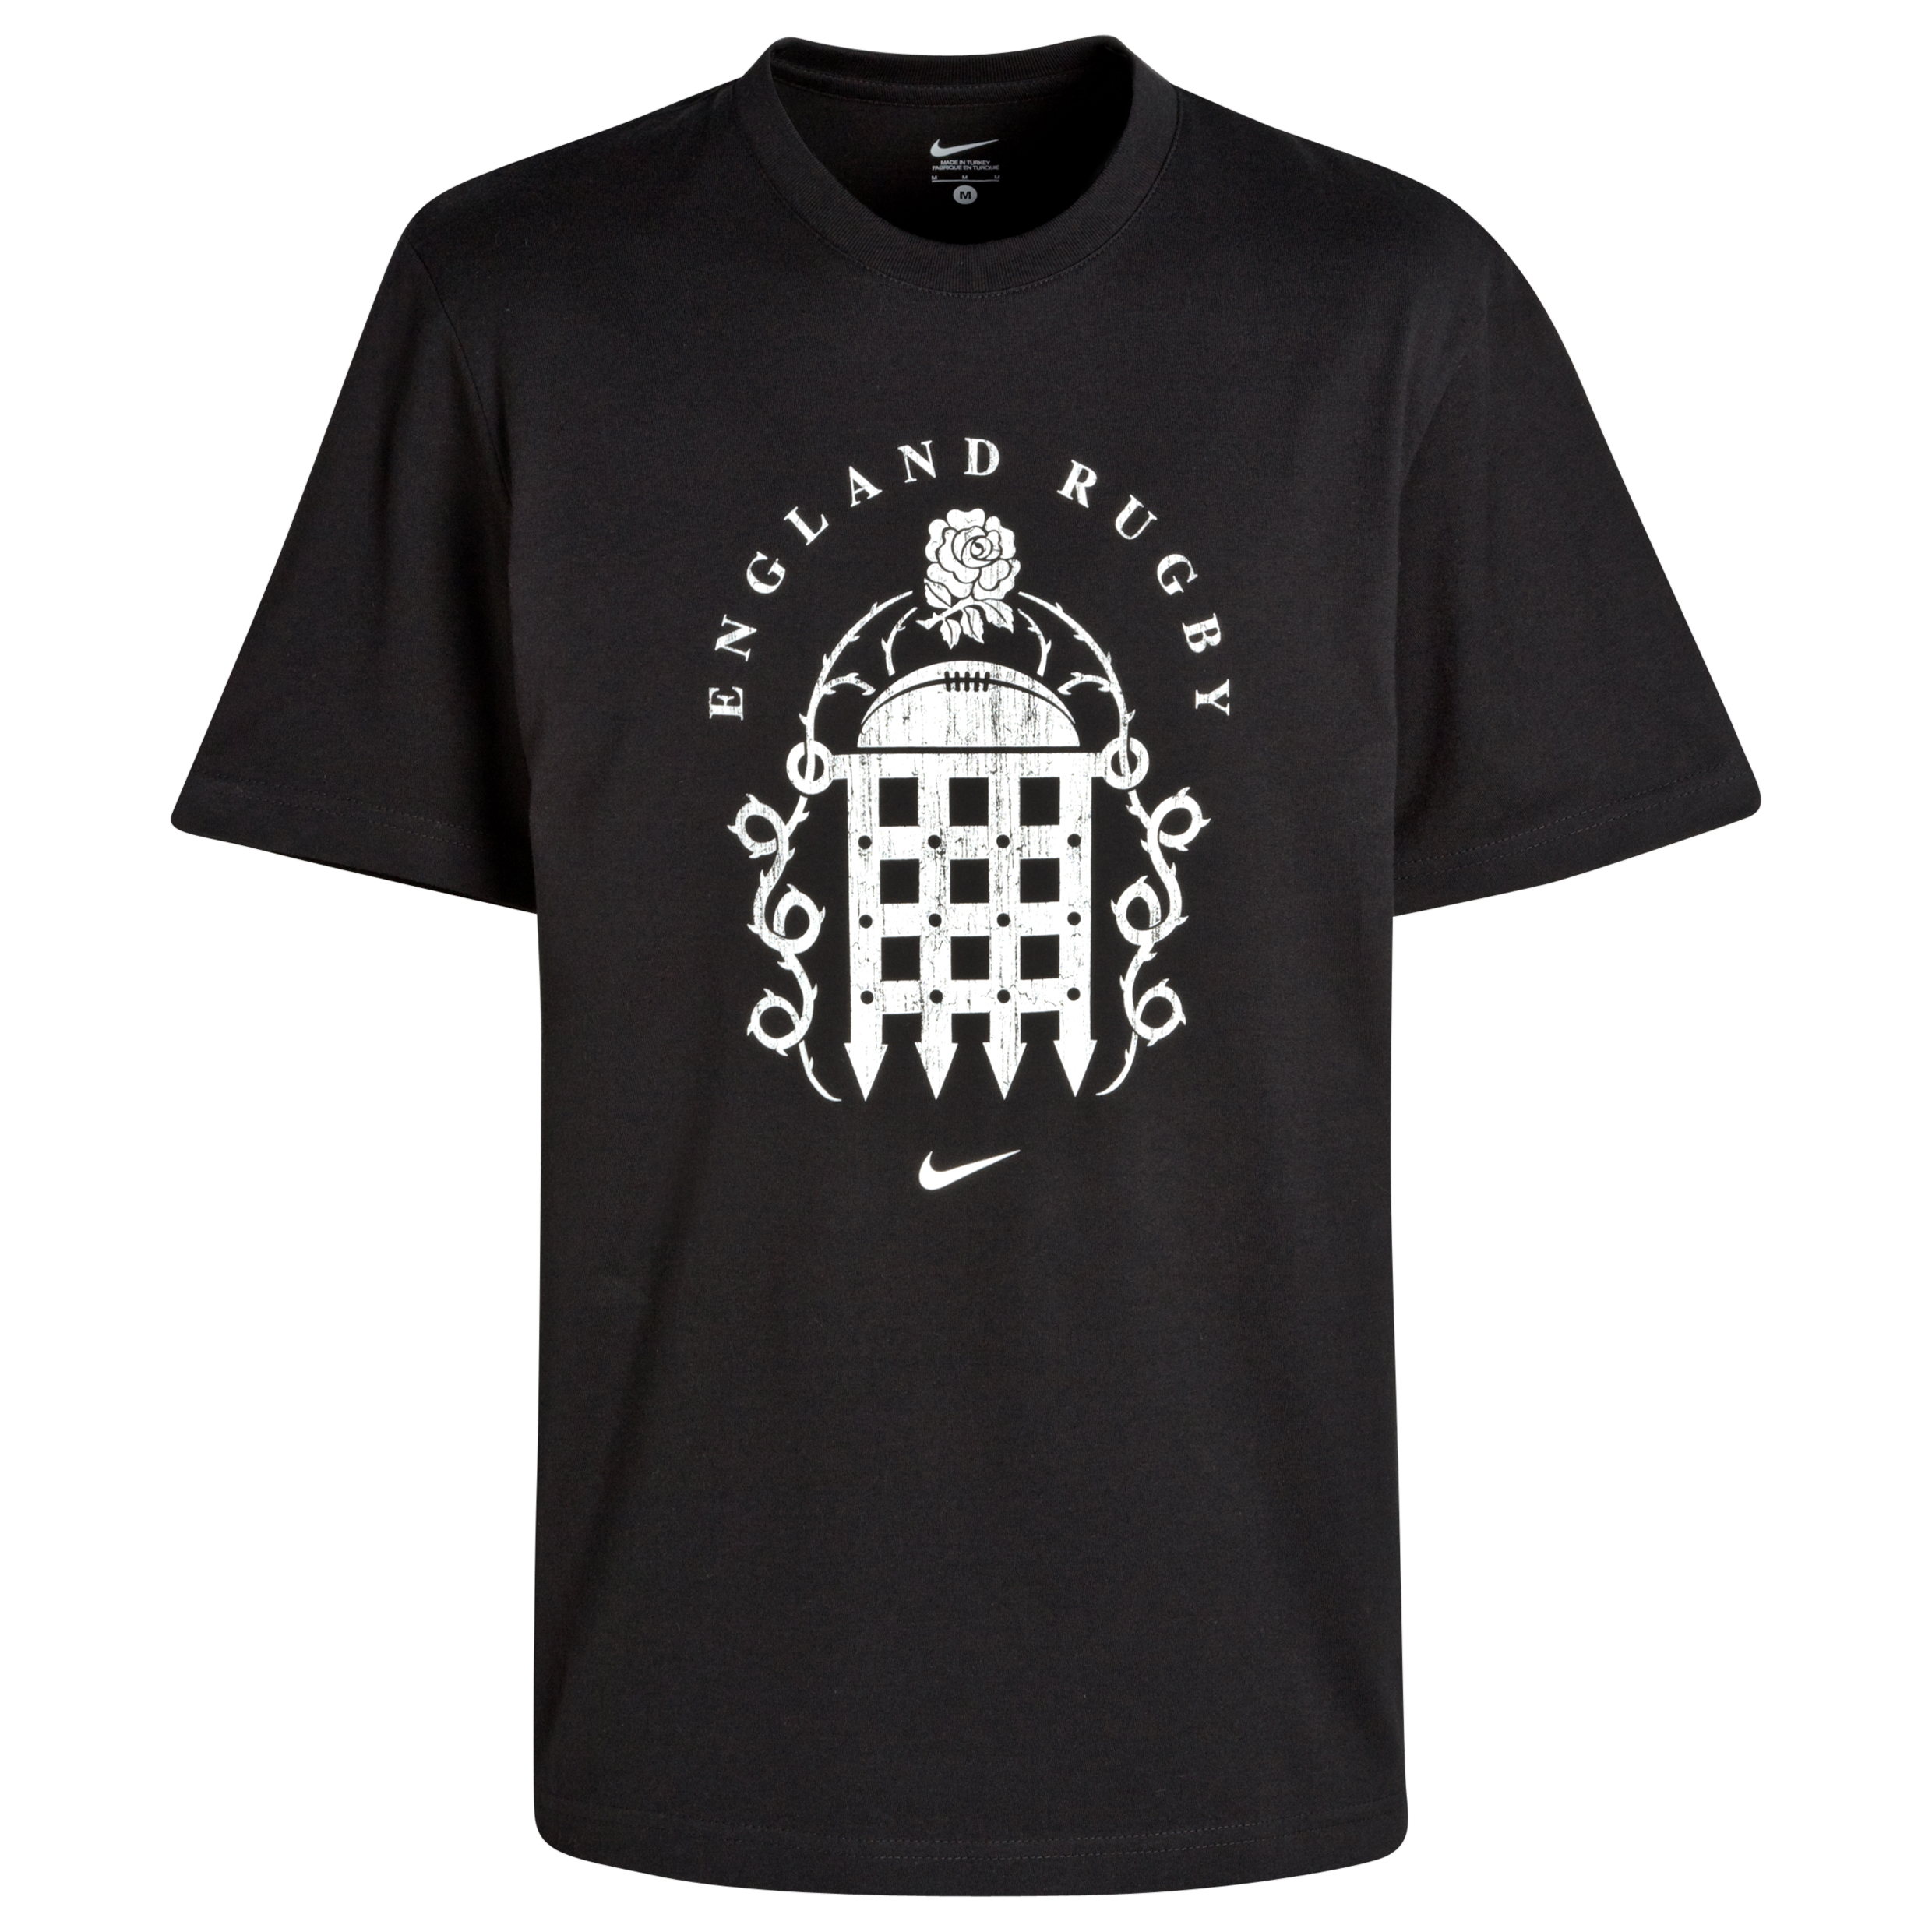 England Rugby Team T-Shirt - Black/White. for 15€